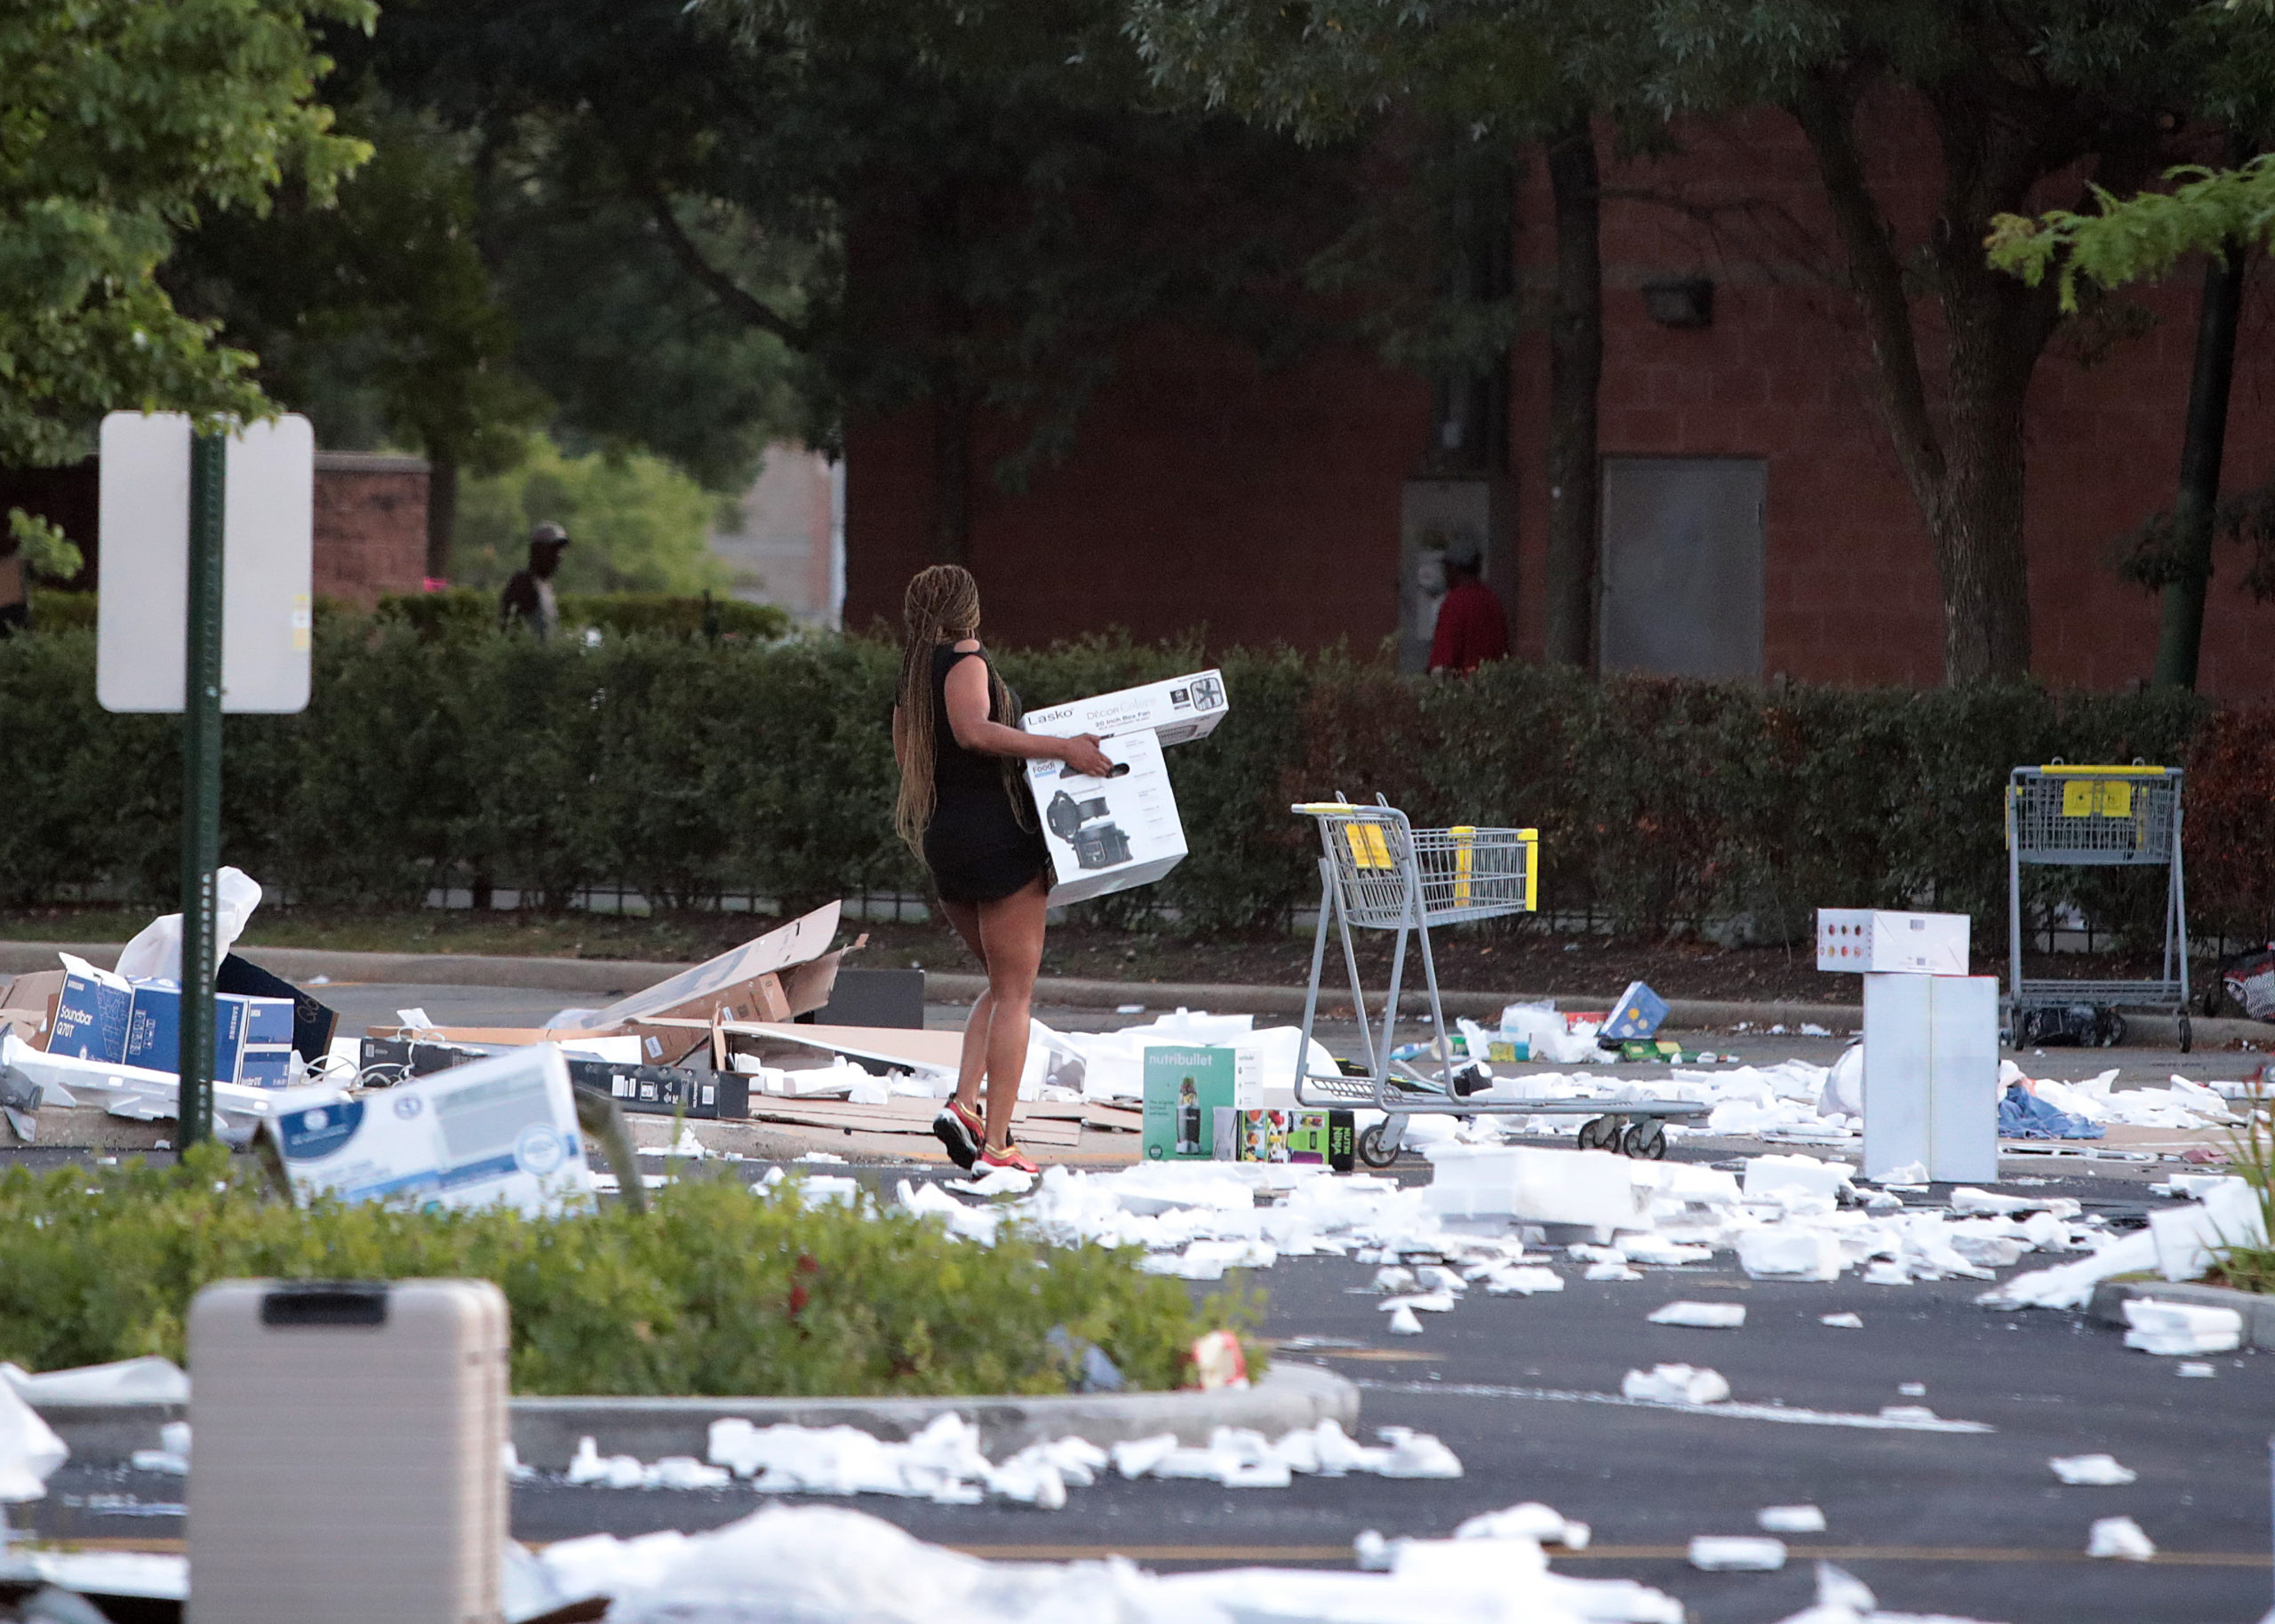 CHICAGO, ILLINOIS - AUGUST 10: A person carries a box near a looted Best Buy store seen after parts of the city had widespread looting and vandalism, on August 10, 2020 in Chicago, Illinois. Police made several arrests during the night of unrest and recovered at least one firearm. (Scott Olson/Getty Images)